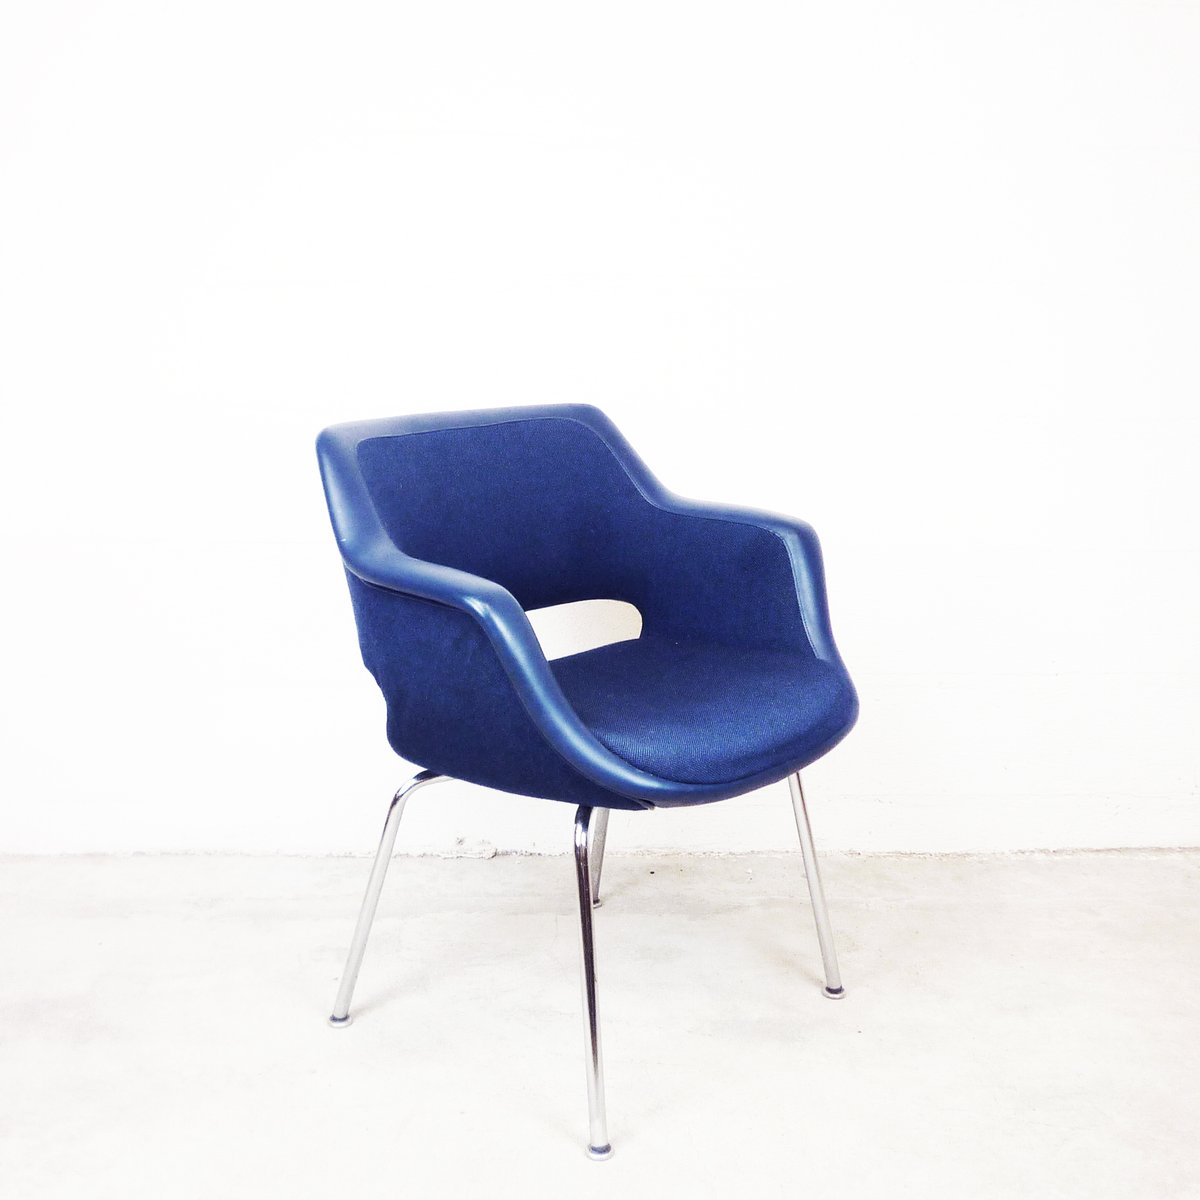 Charming Vintage Blue Armchair By Olli Mannermaa